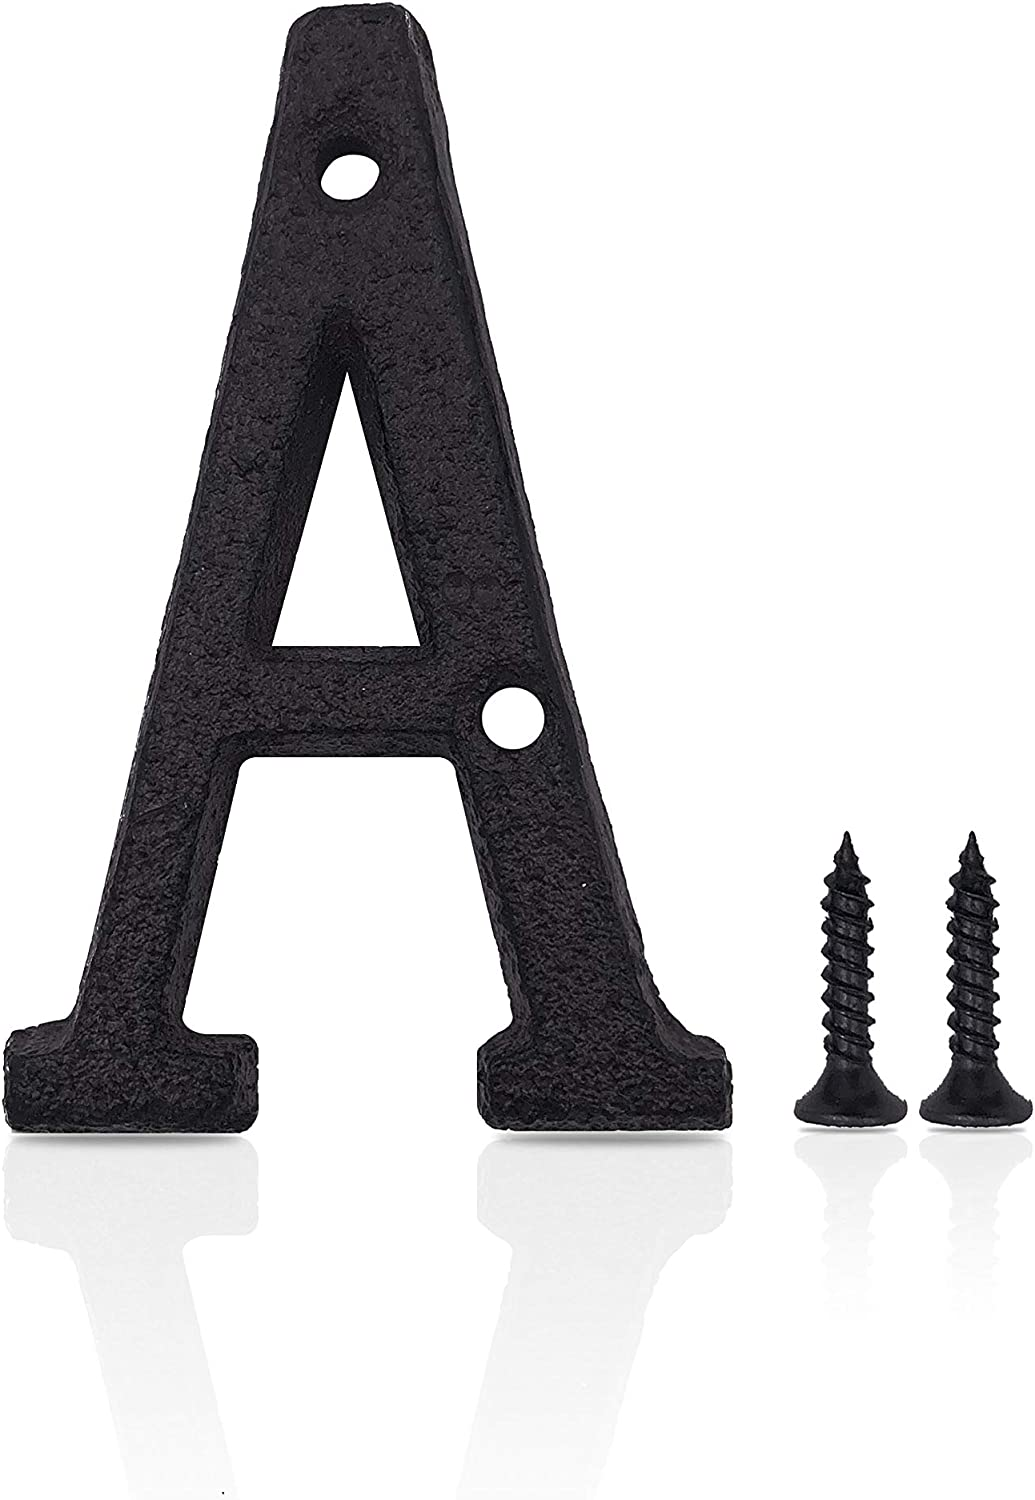 Modern House Numbers, Wrought Iron Home Address/Mailbox Number, DIY Hardwares, 3 Inches High(Letter A)